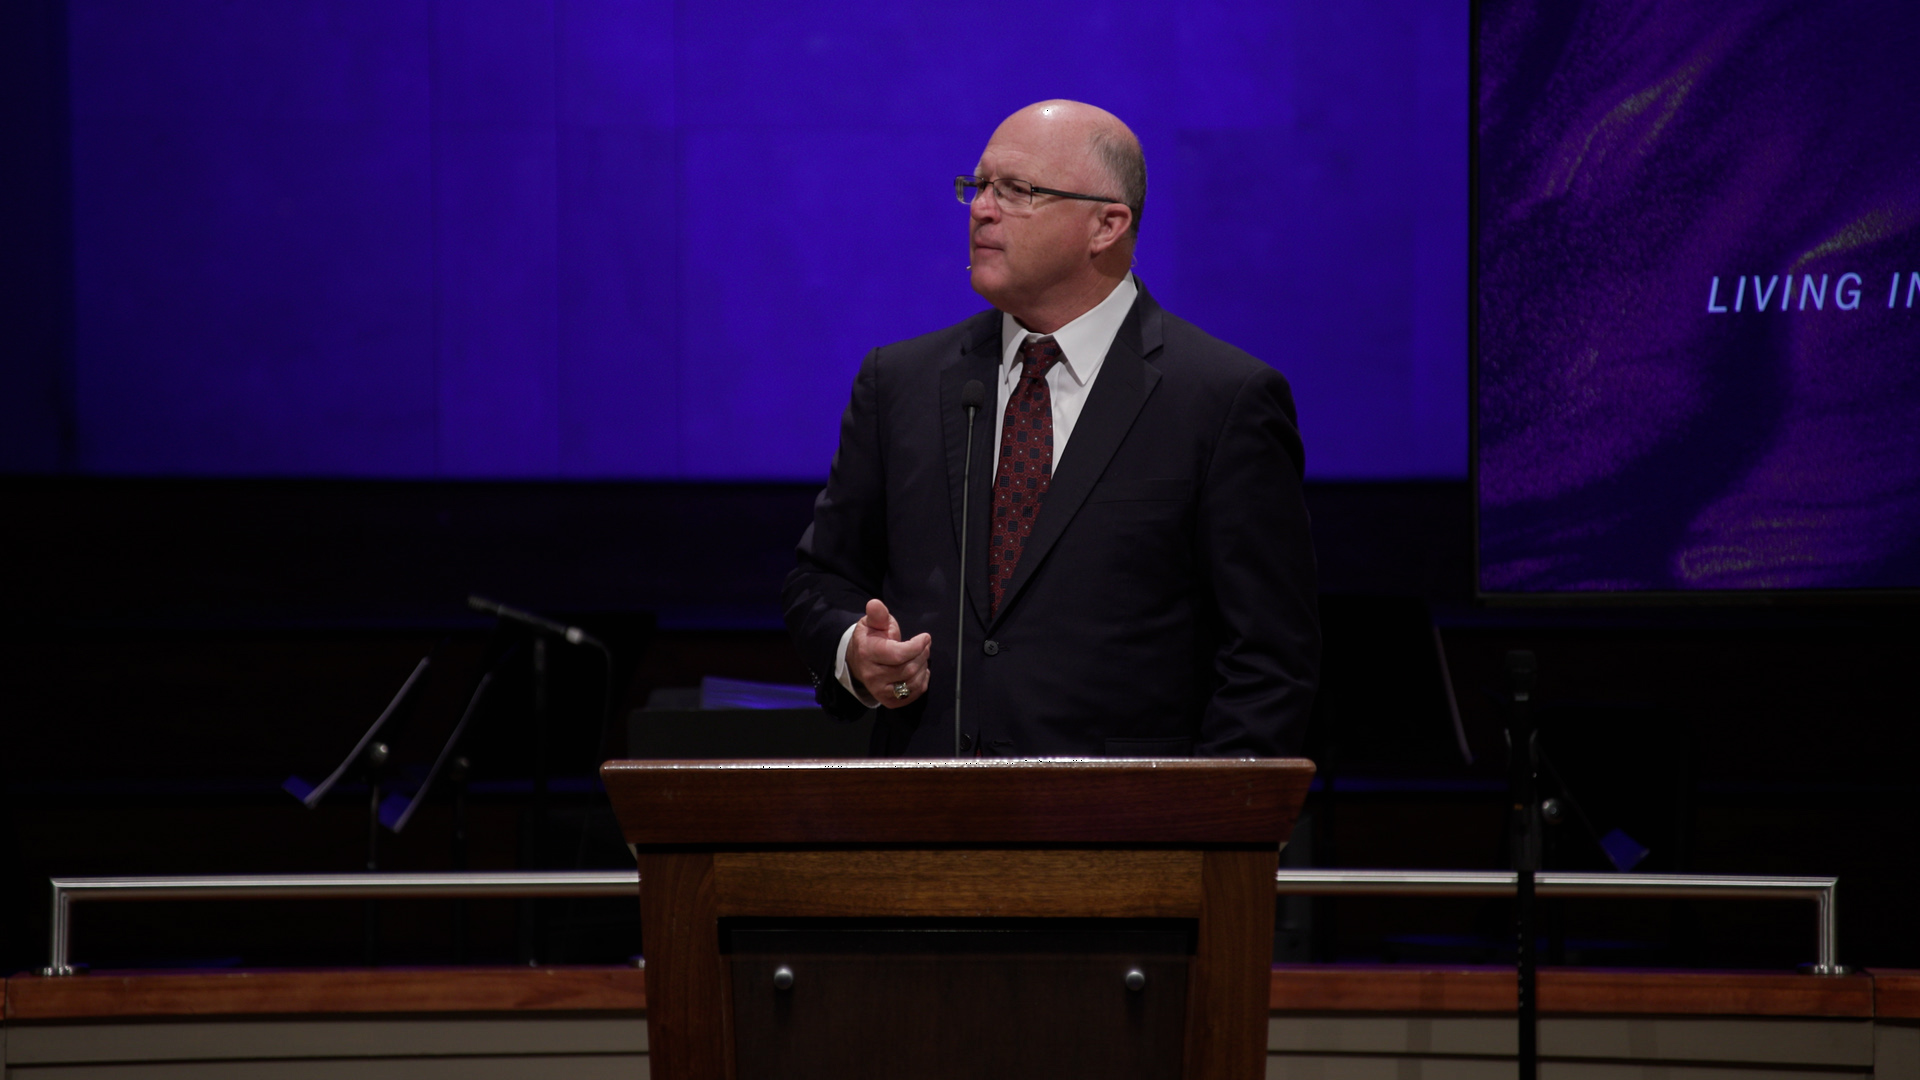 Pastor Paul Chappell: Conquer Through Christ